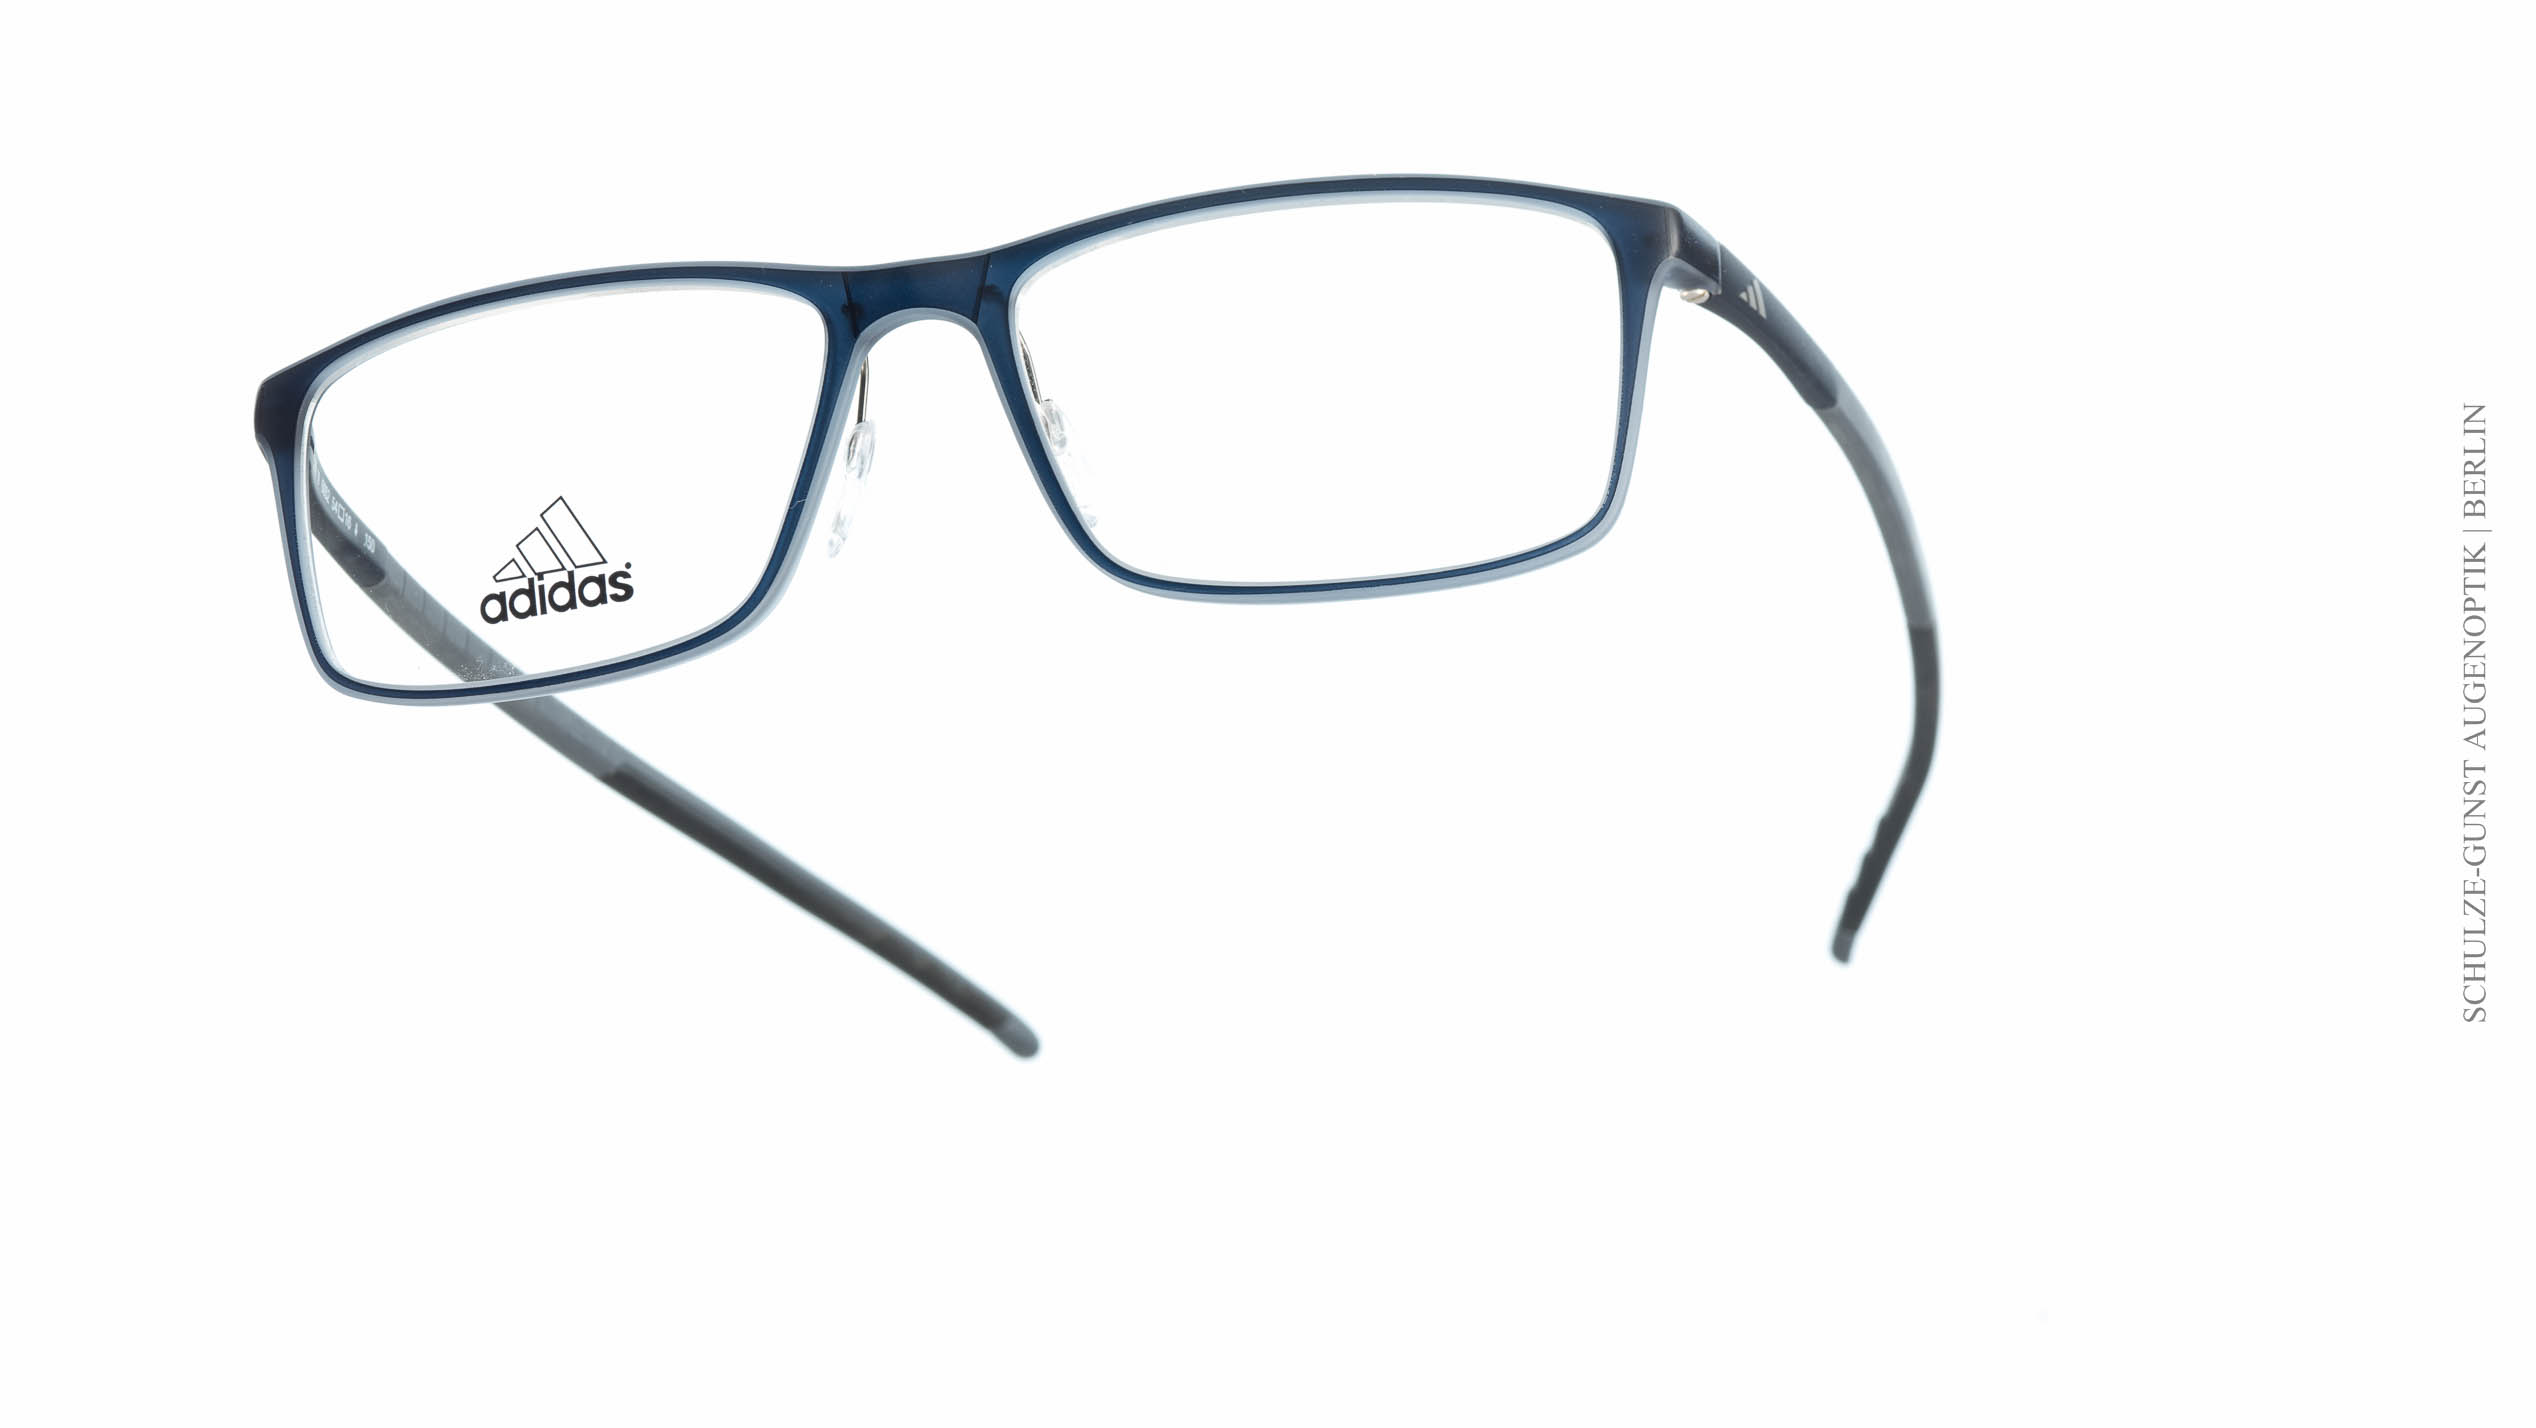 adidas eyewear a692 on sale > OFF61% Discounted